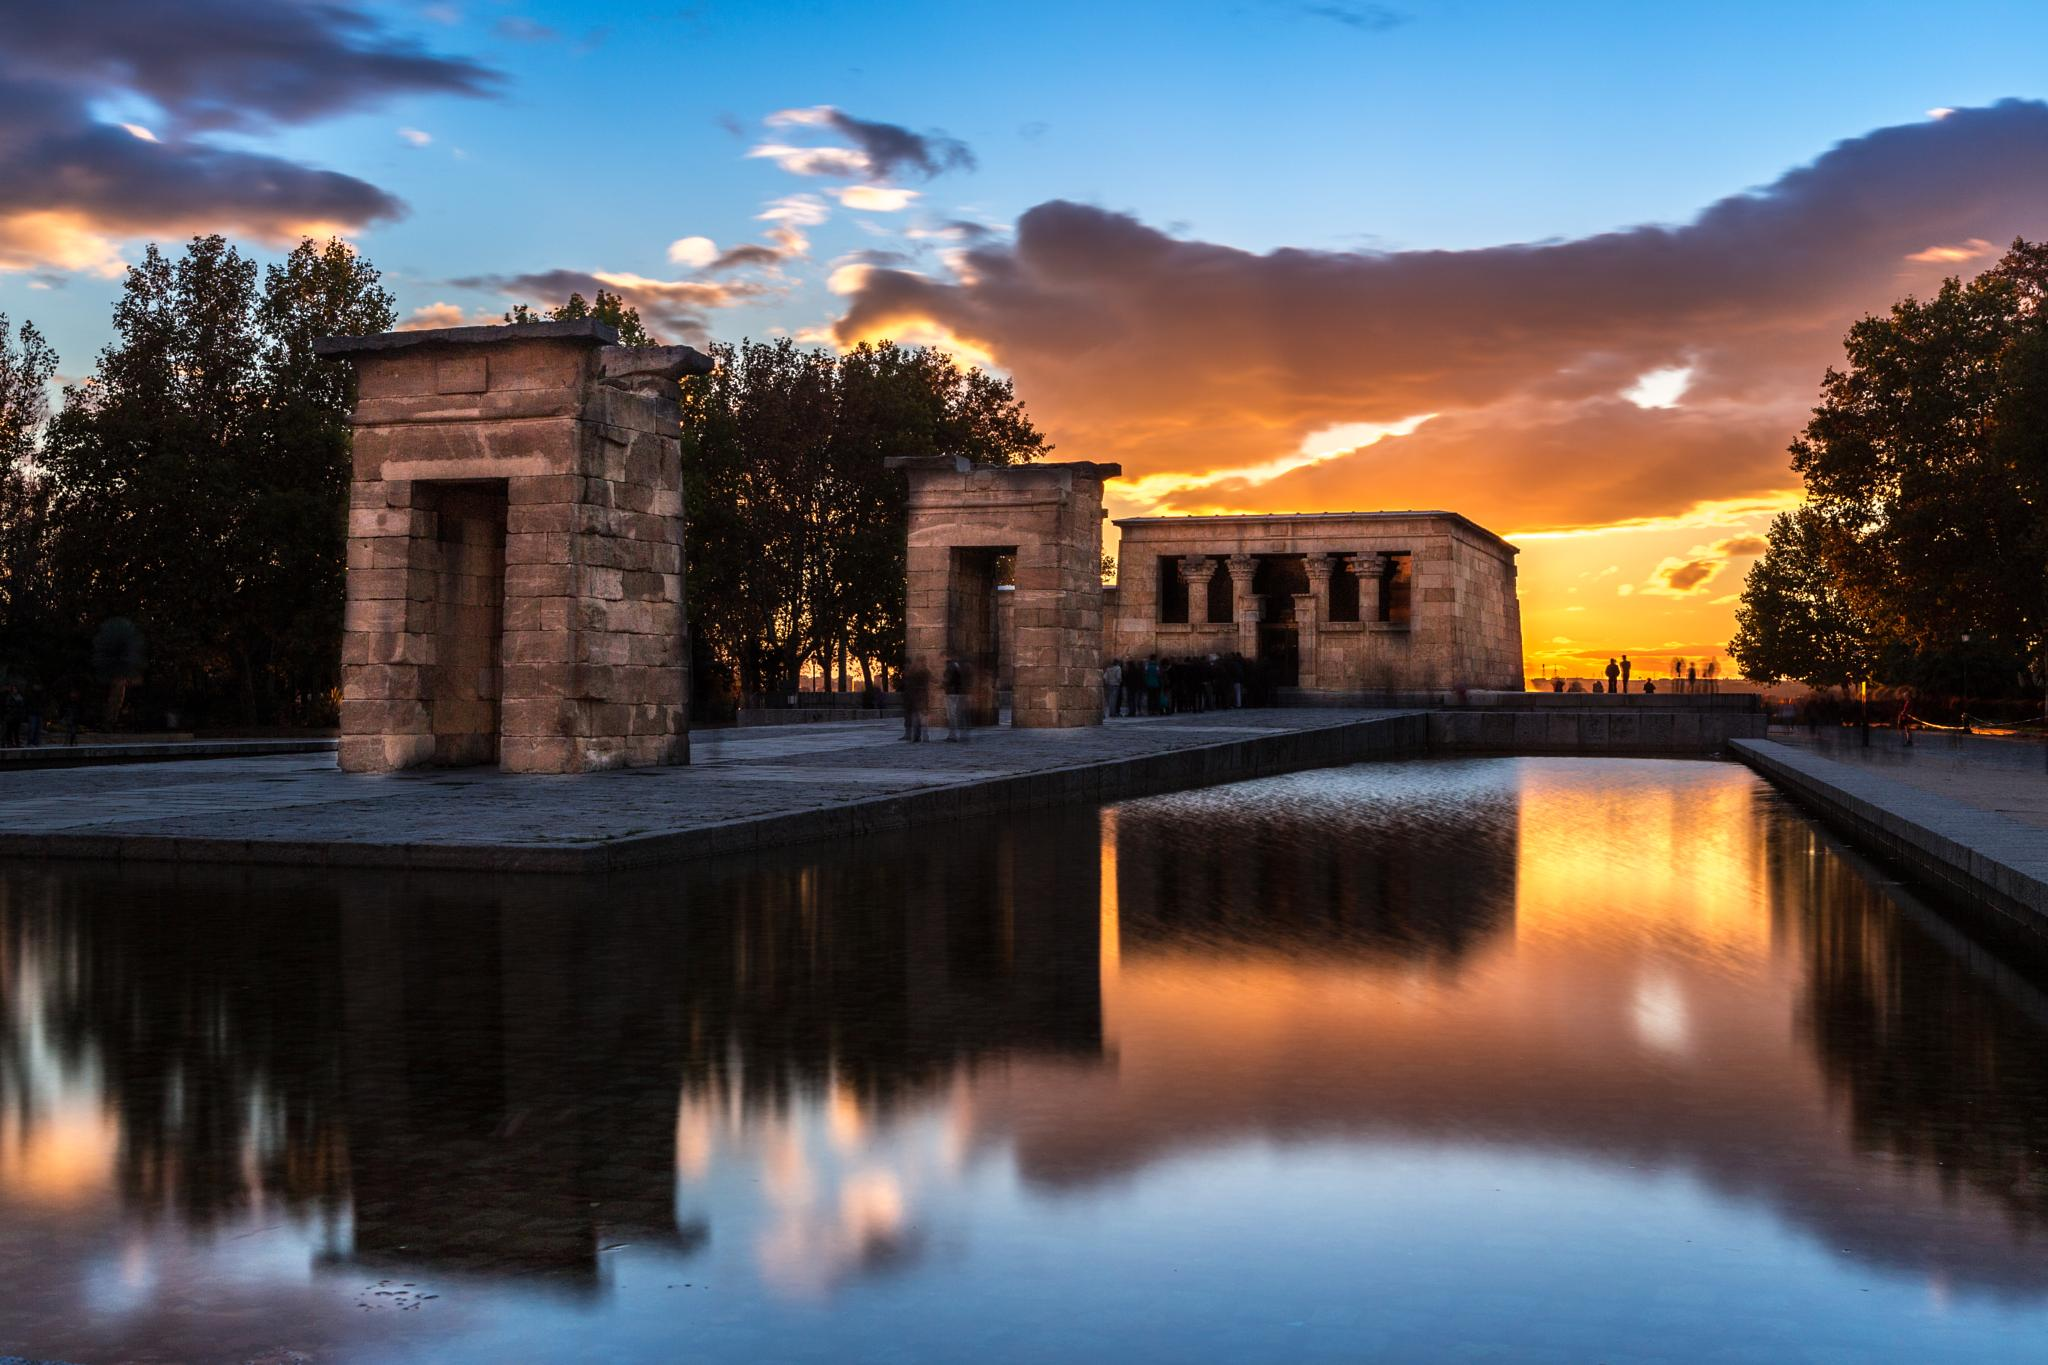 Debod temple by Ana Gomez